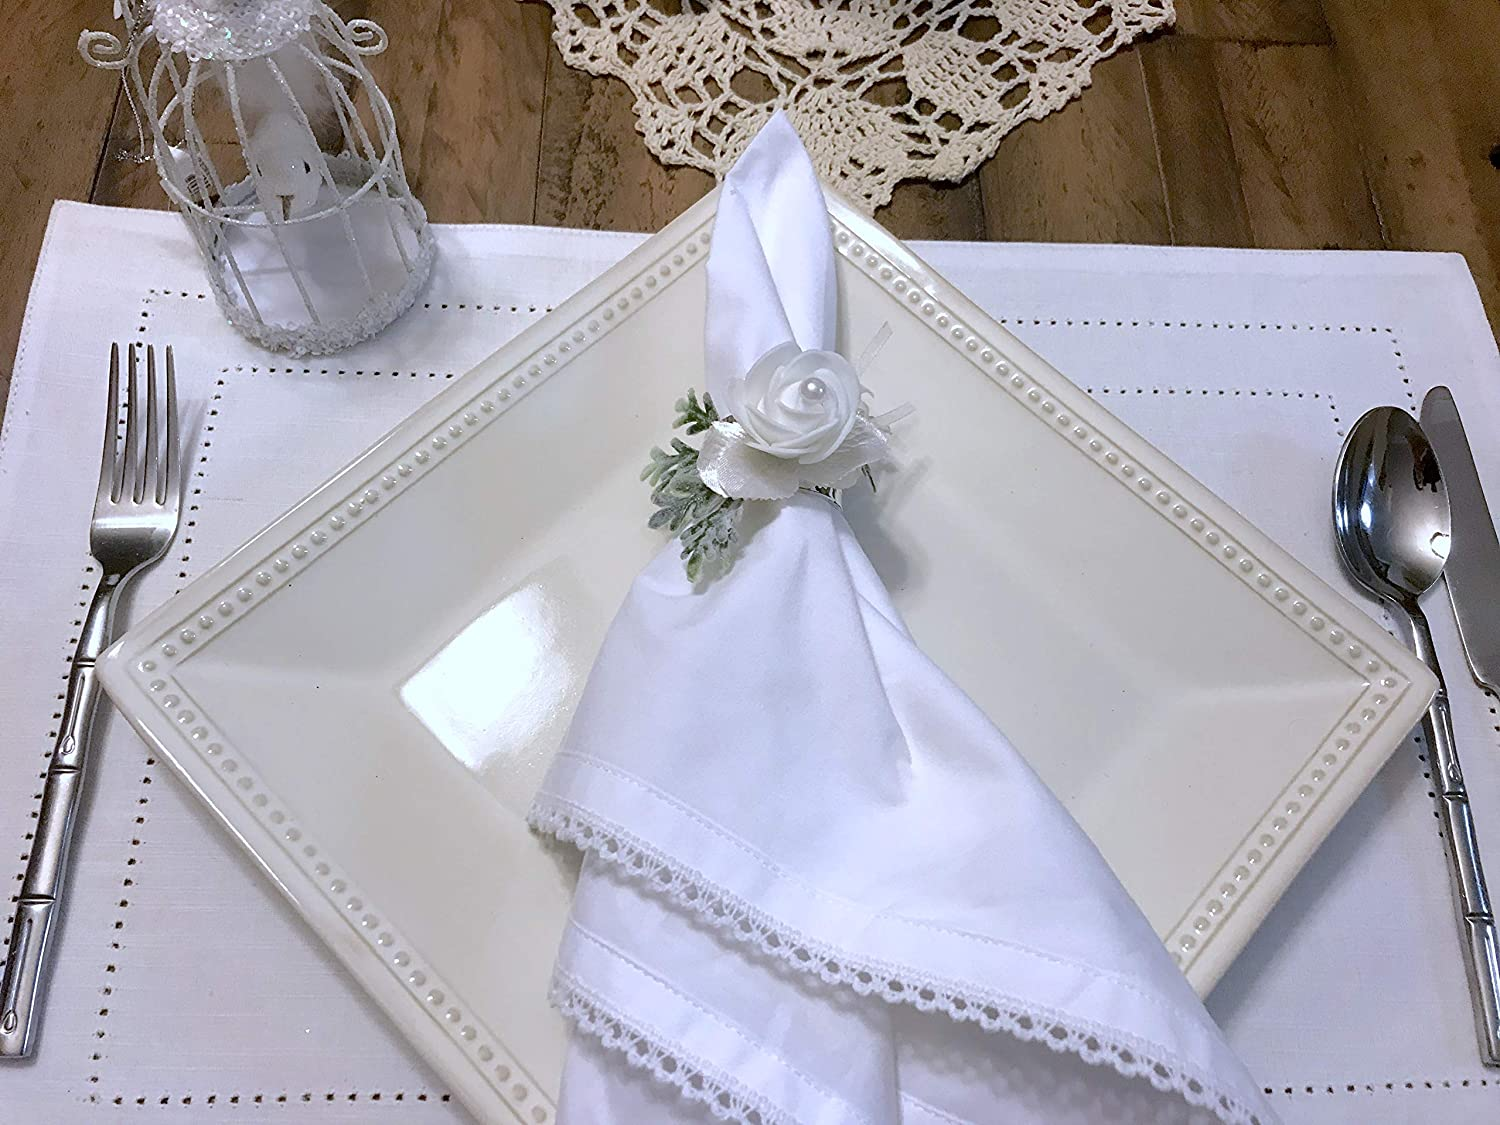 SET OF 6 NAPKIN RINGS Traditional White and Pearl Wedding Napkin rings Elegant White floral and Greenery Wedding Napkin Ring